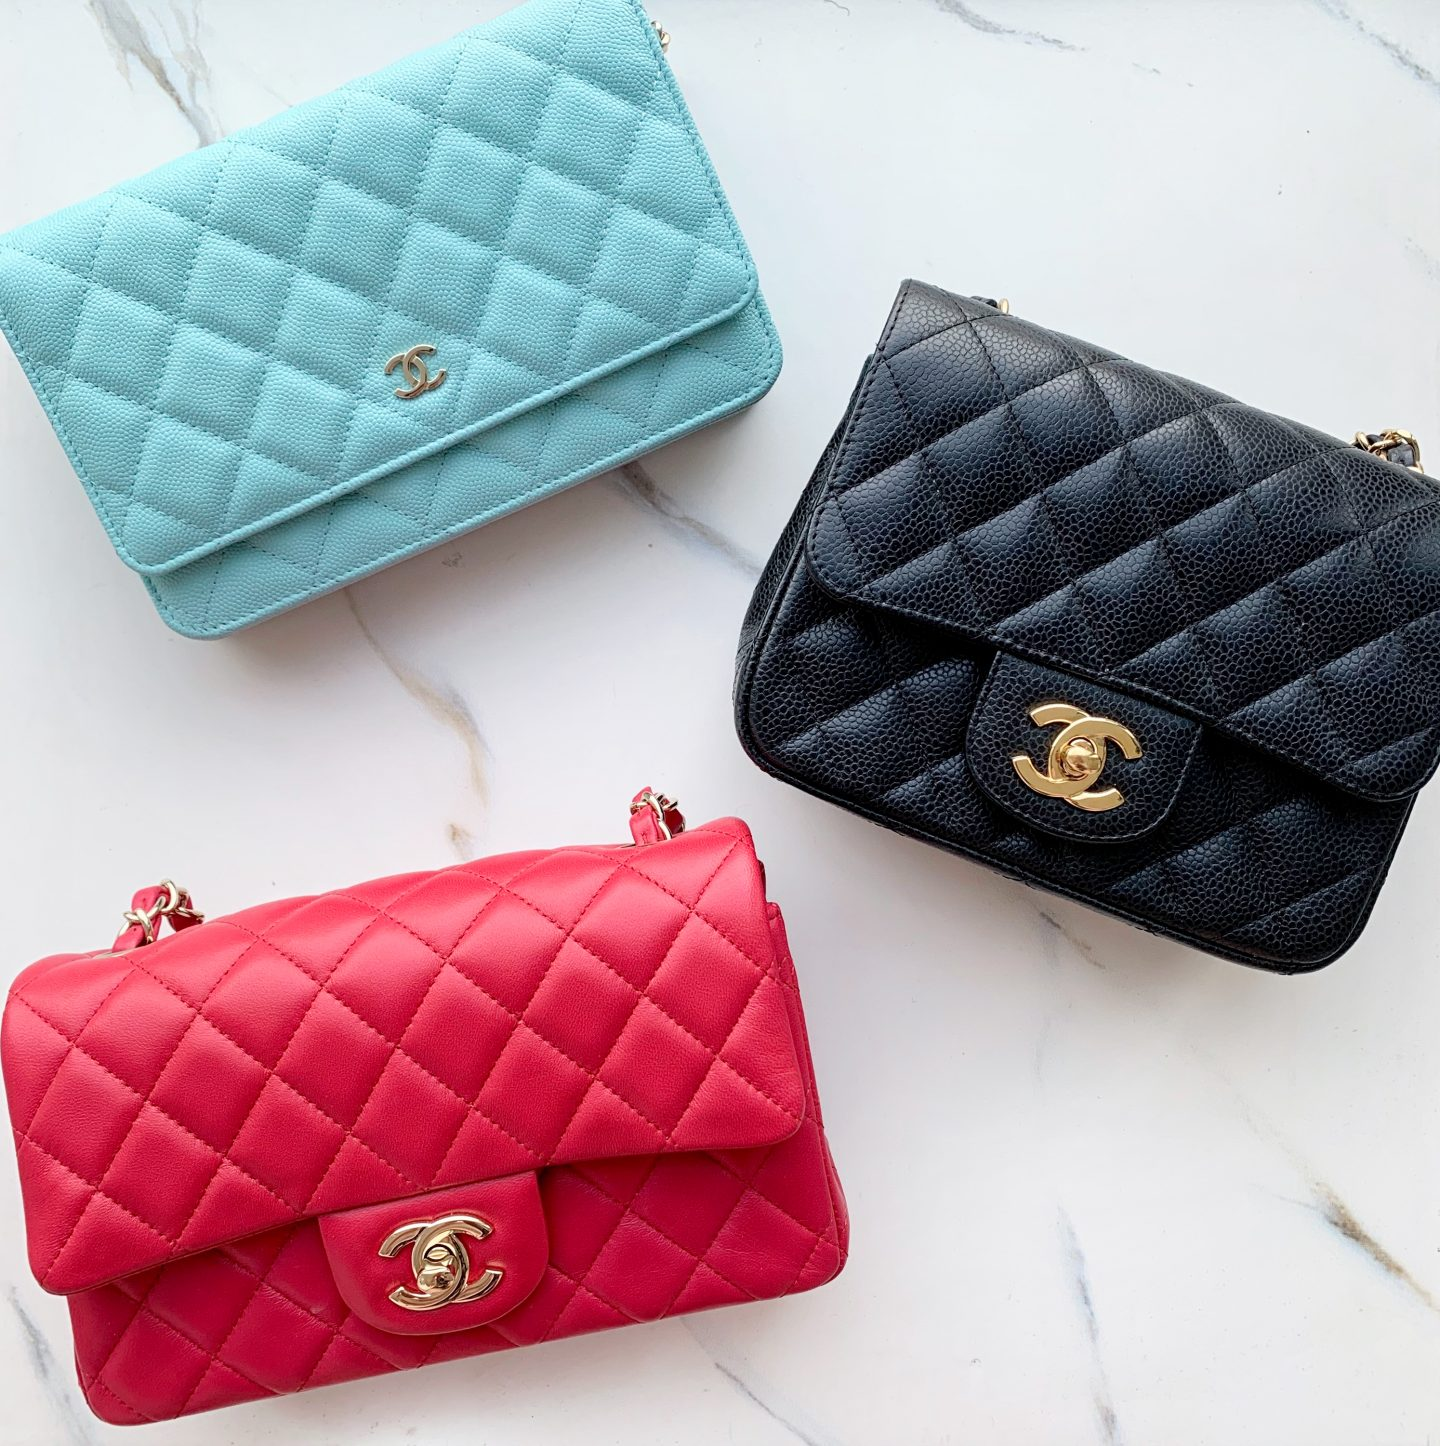 Europe Chanel Bag Price List Guide